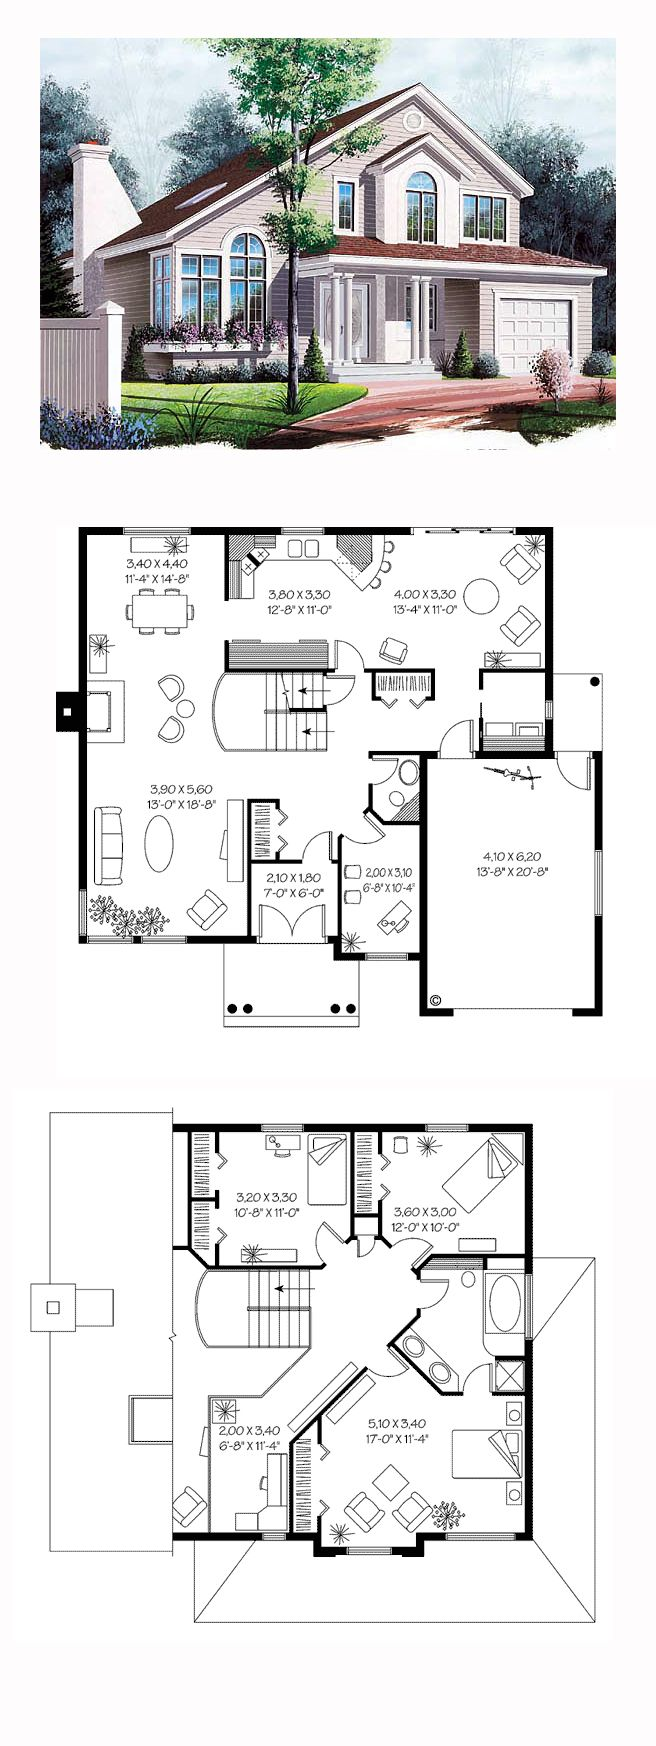 17 best images about saltbox house plans on pinterest for Saltbox plans